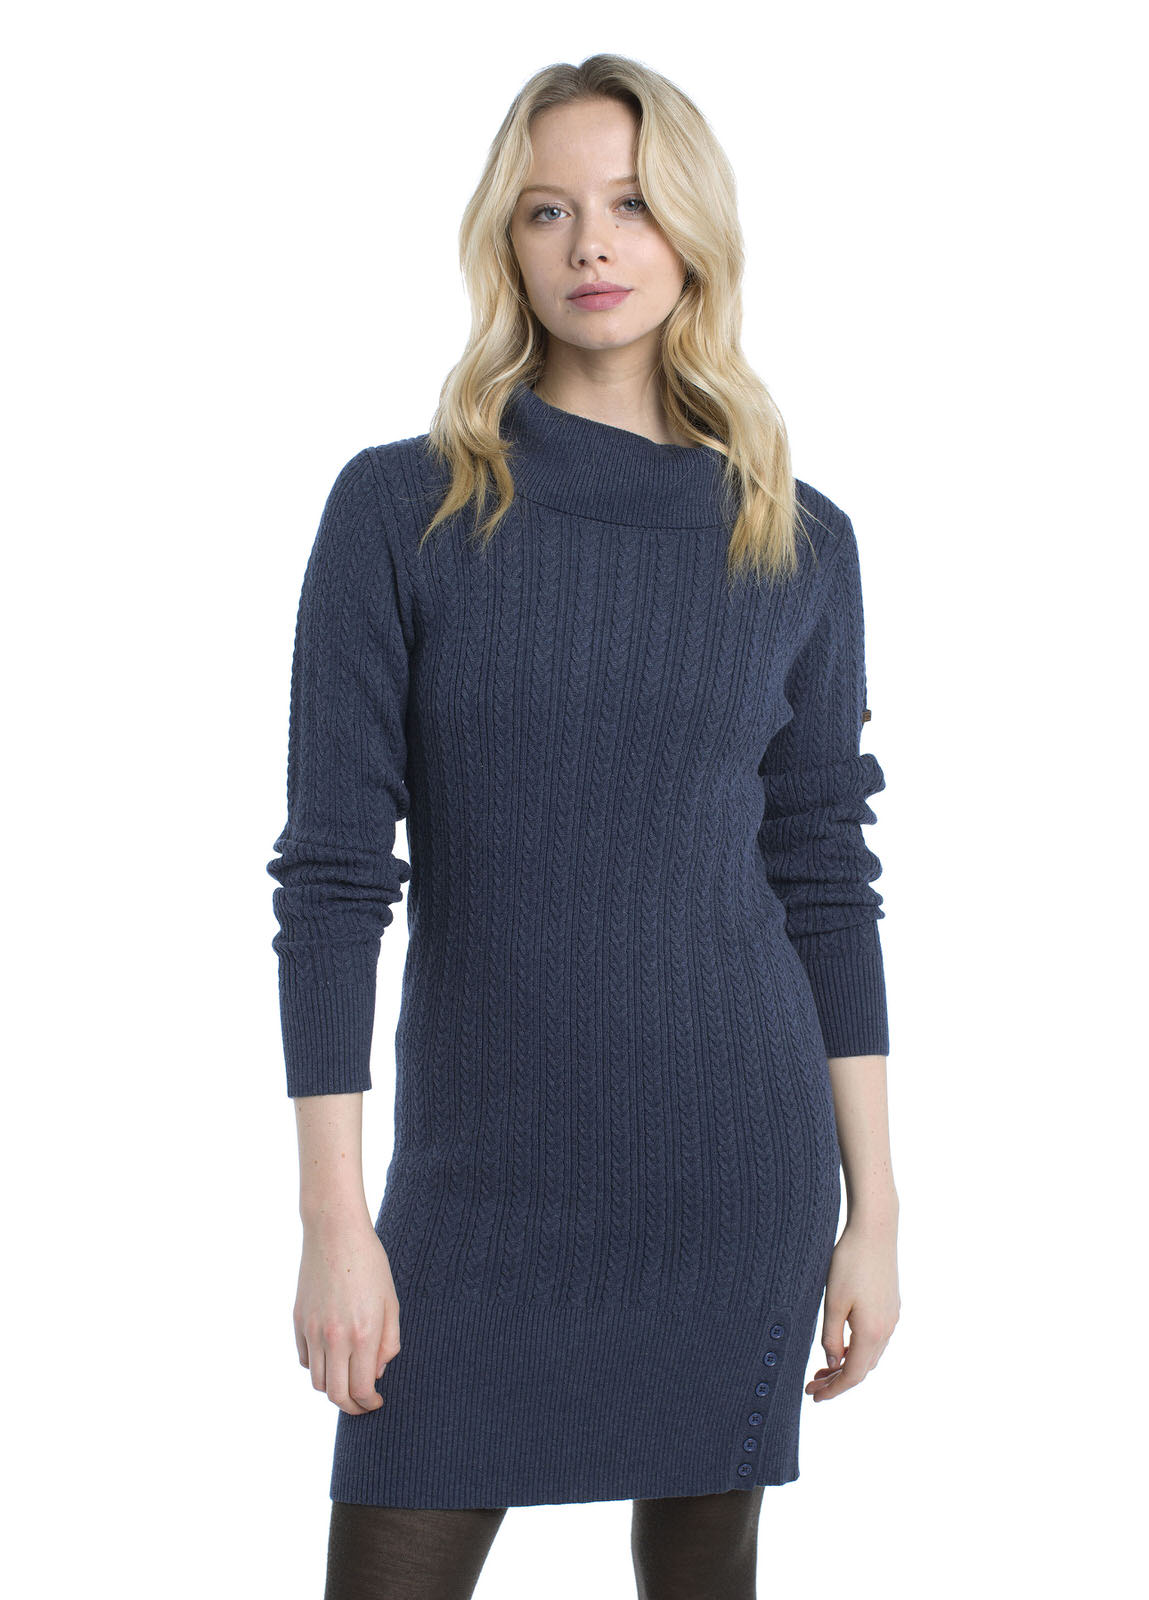 Westport_Sweater_dress_French_Navy_Image_3